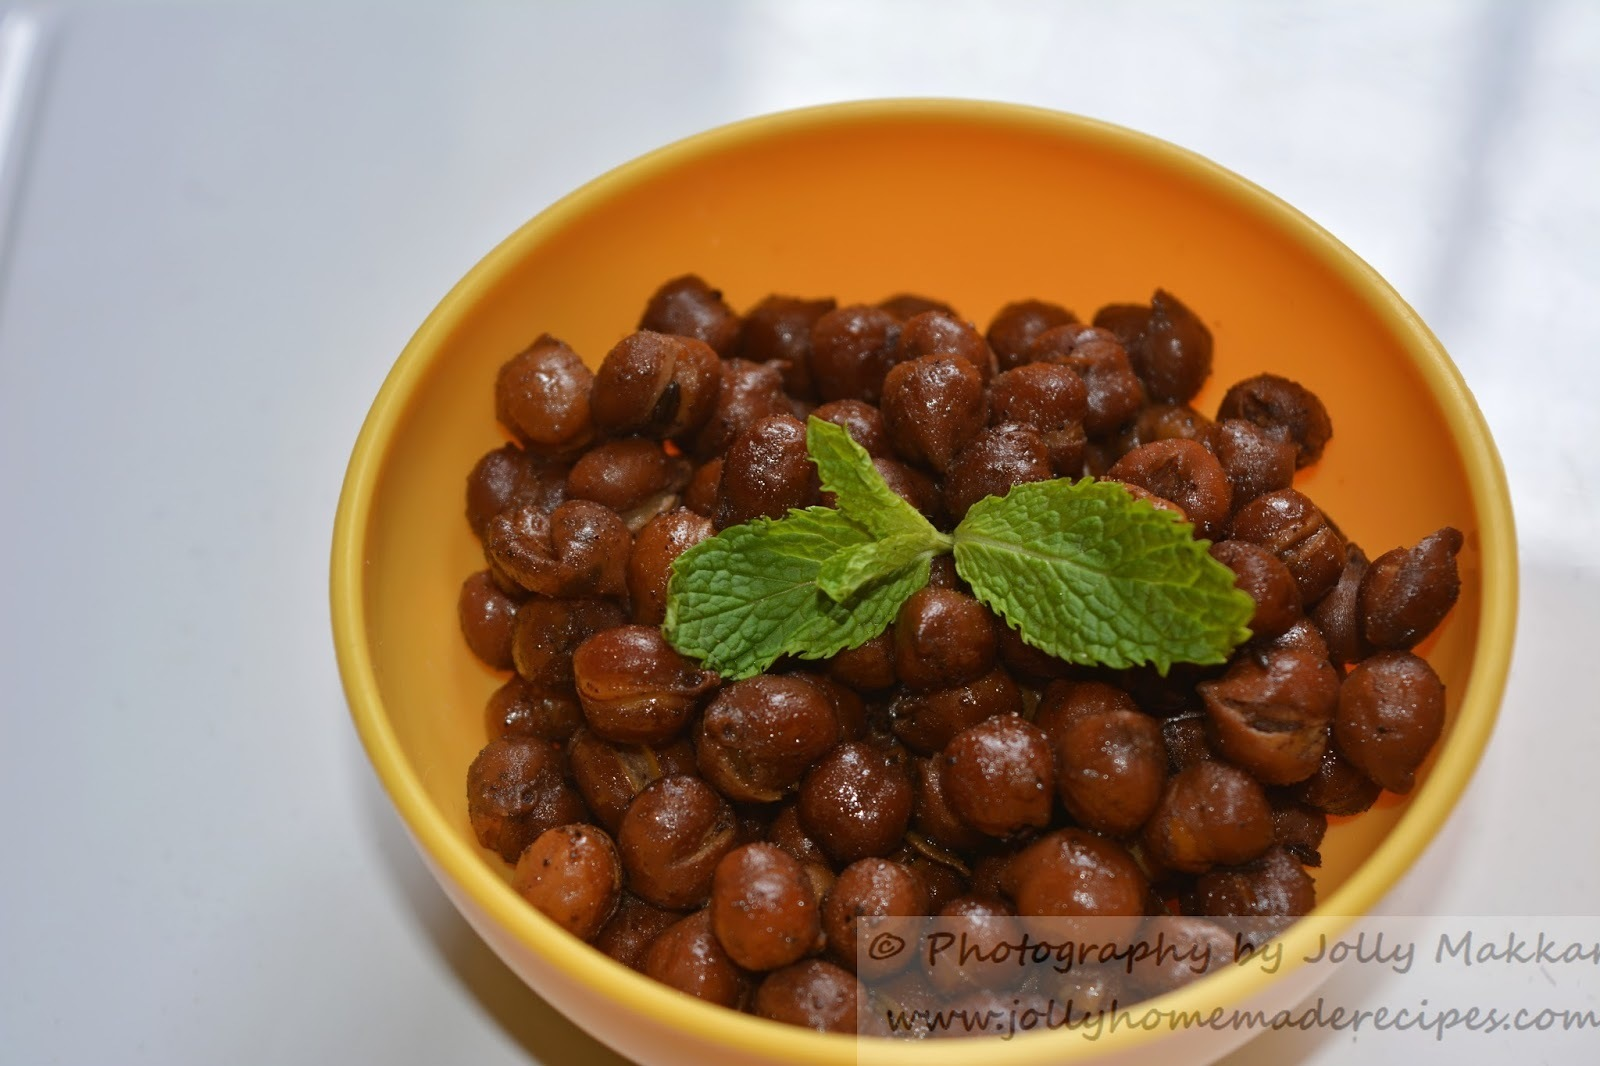 Kala Chana - Ashtami Prasad, How to make North Indian style Dry Kala Chana Recipe